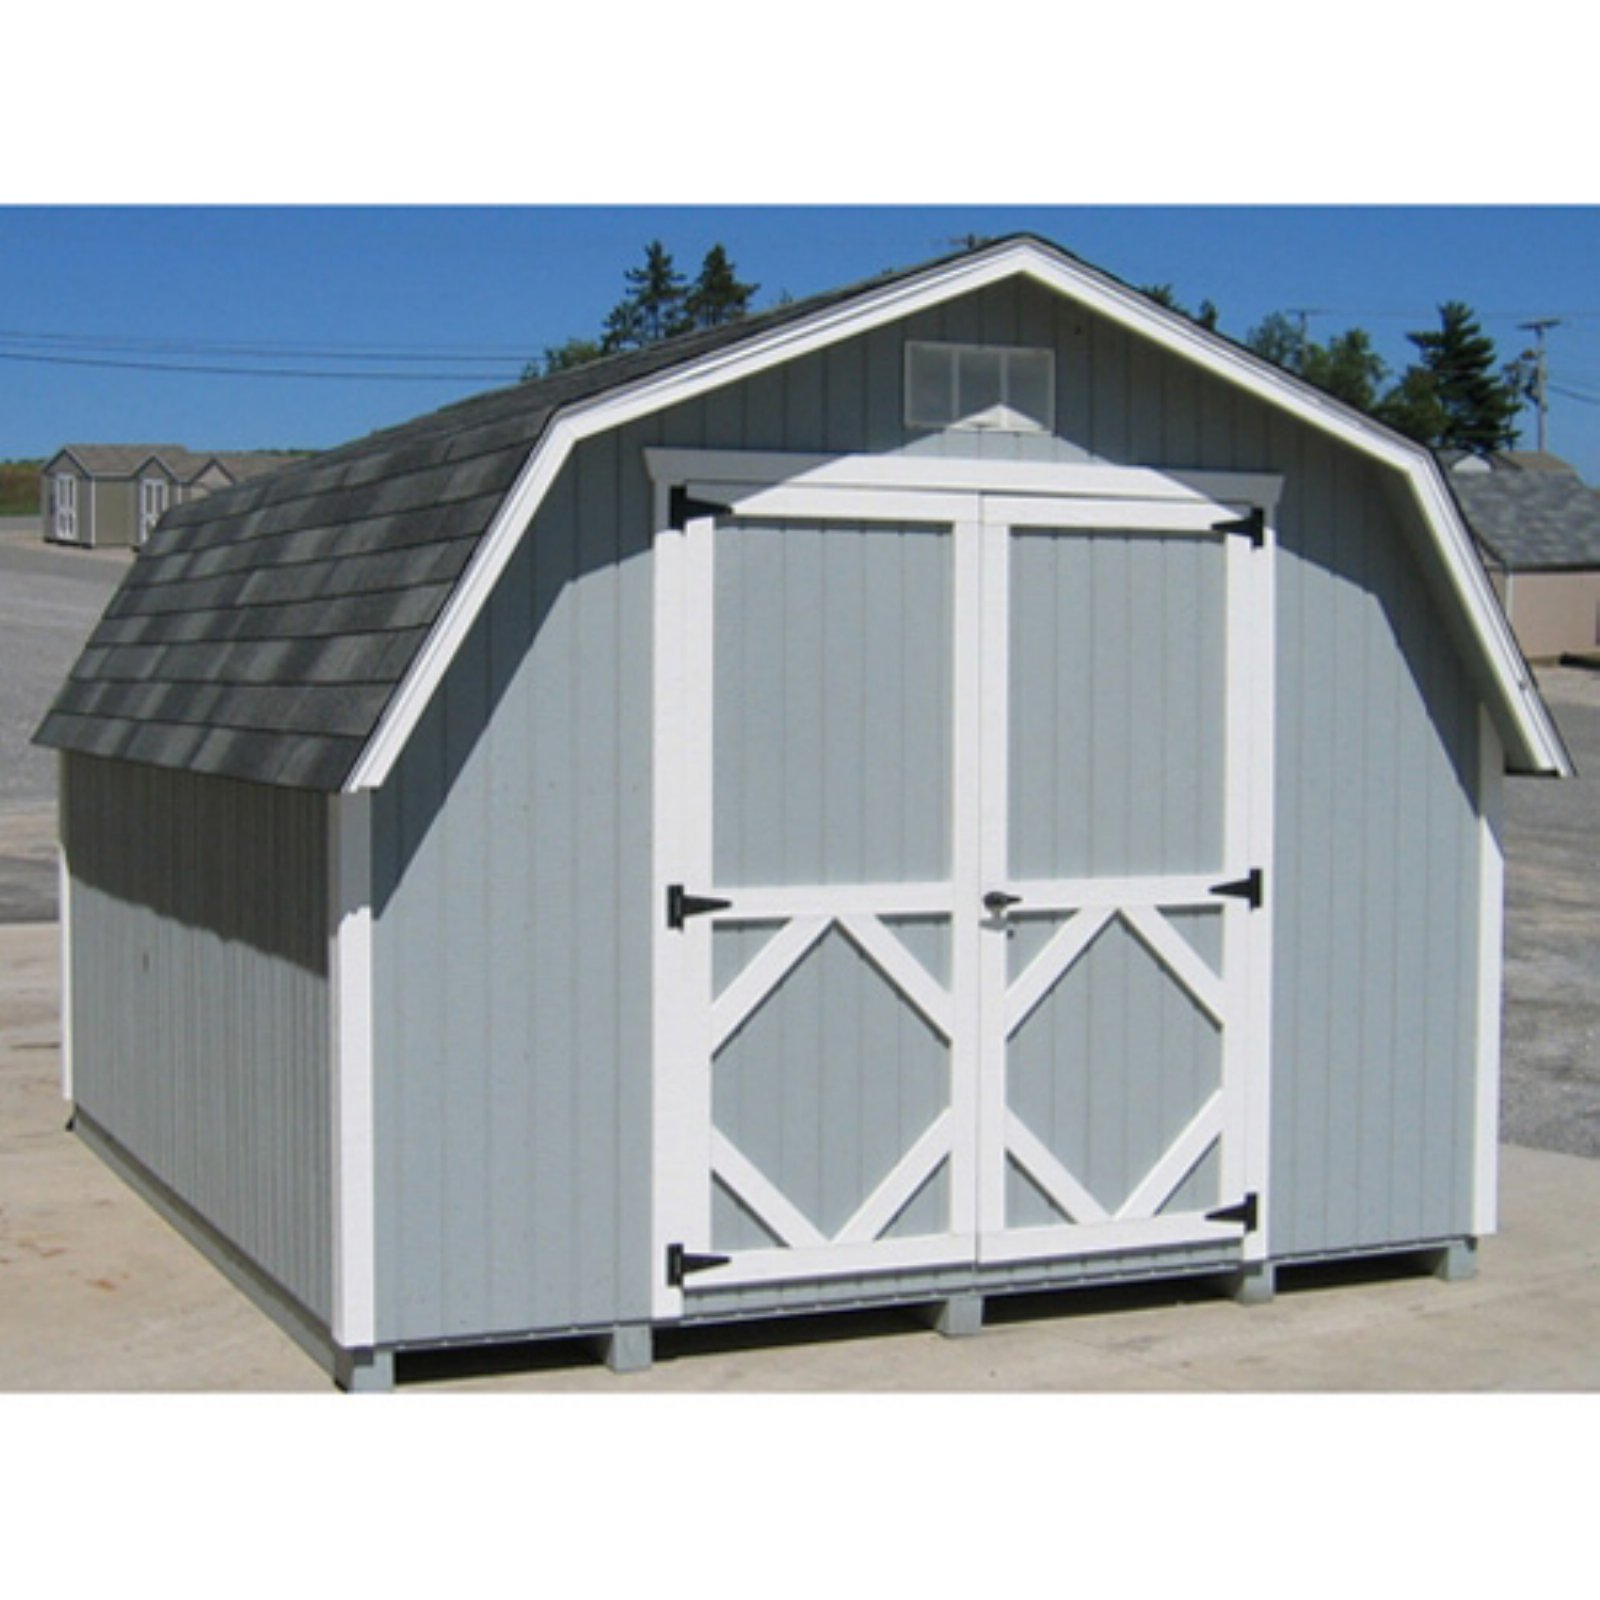 Little Cottage 10 x 8 ft. Classic Wood Gambrel Barn Panelized Storage Shed